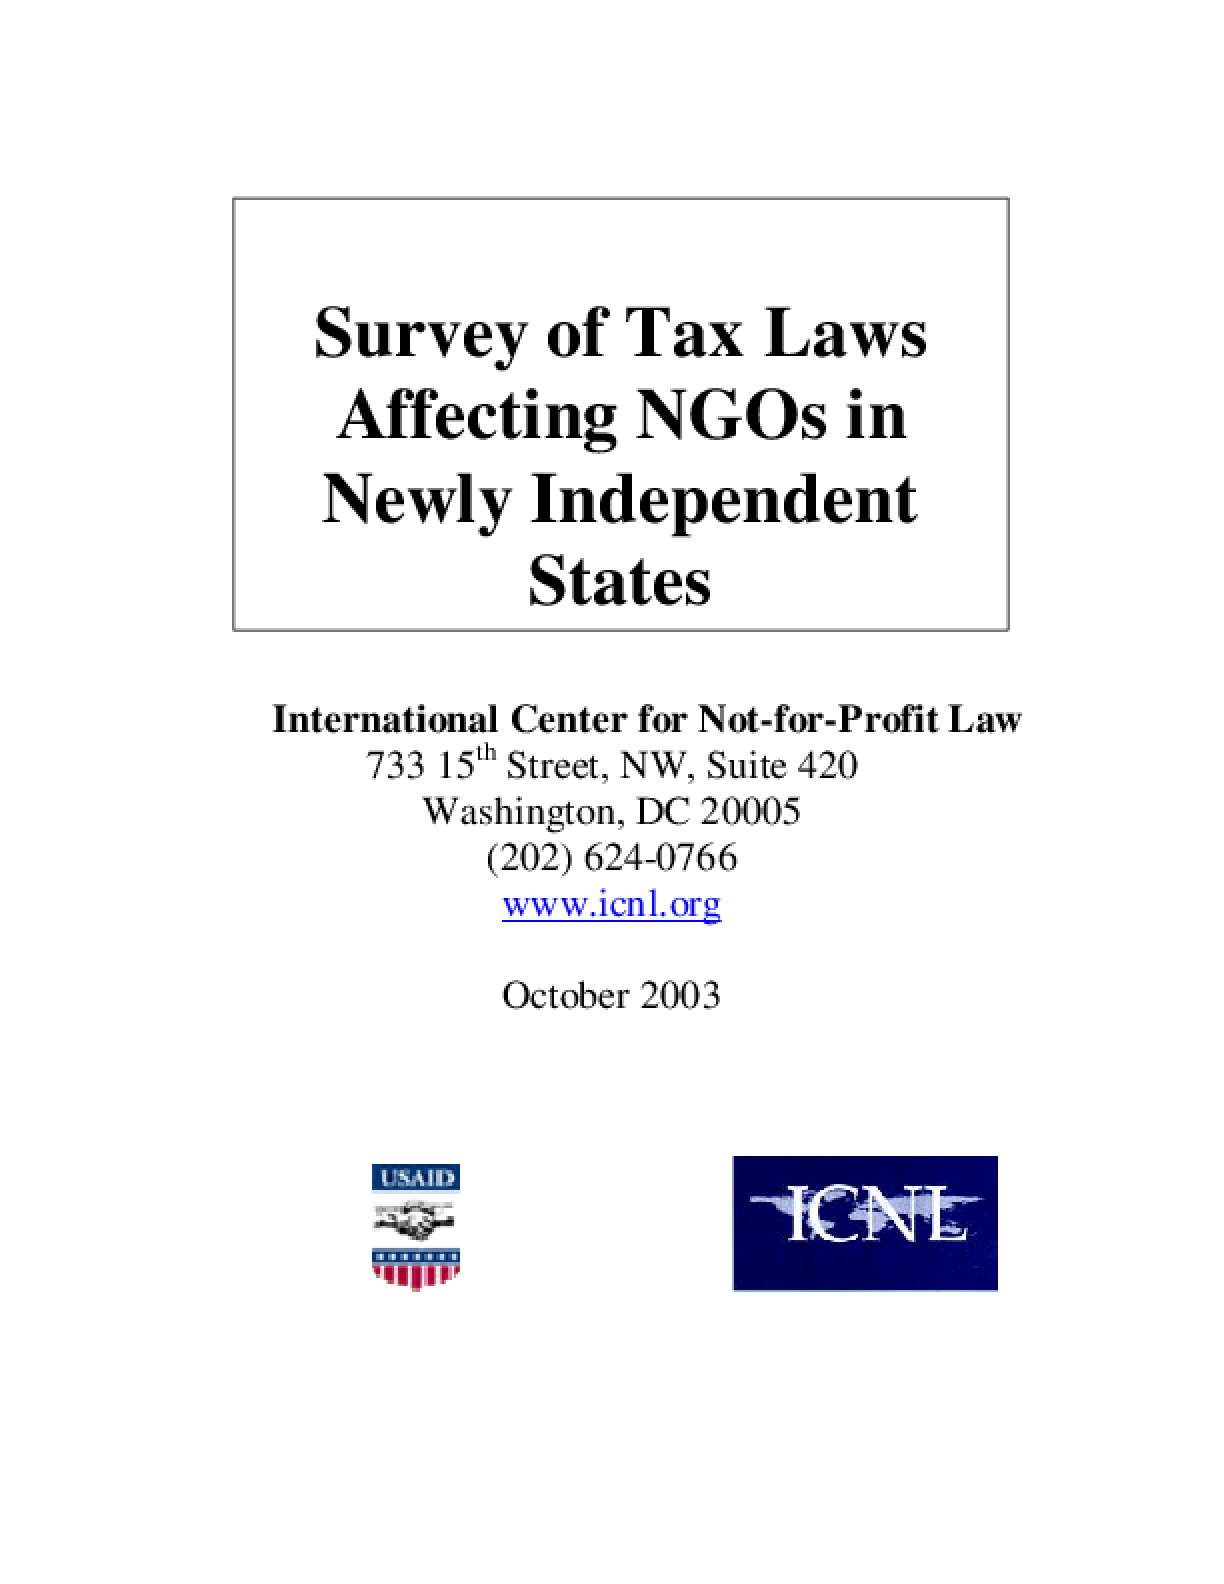 Survey of Tax Laws Affecting NGOs in Newly Independent States